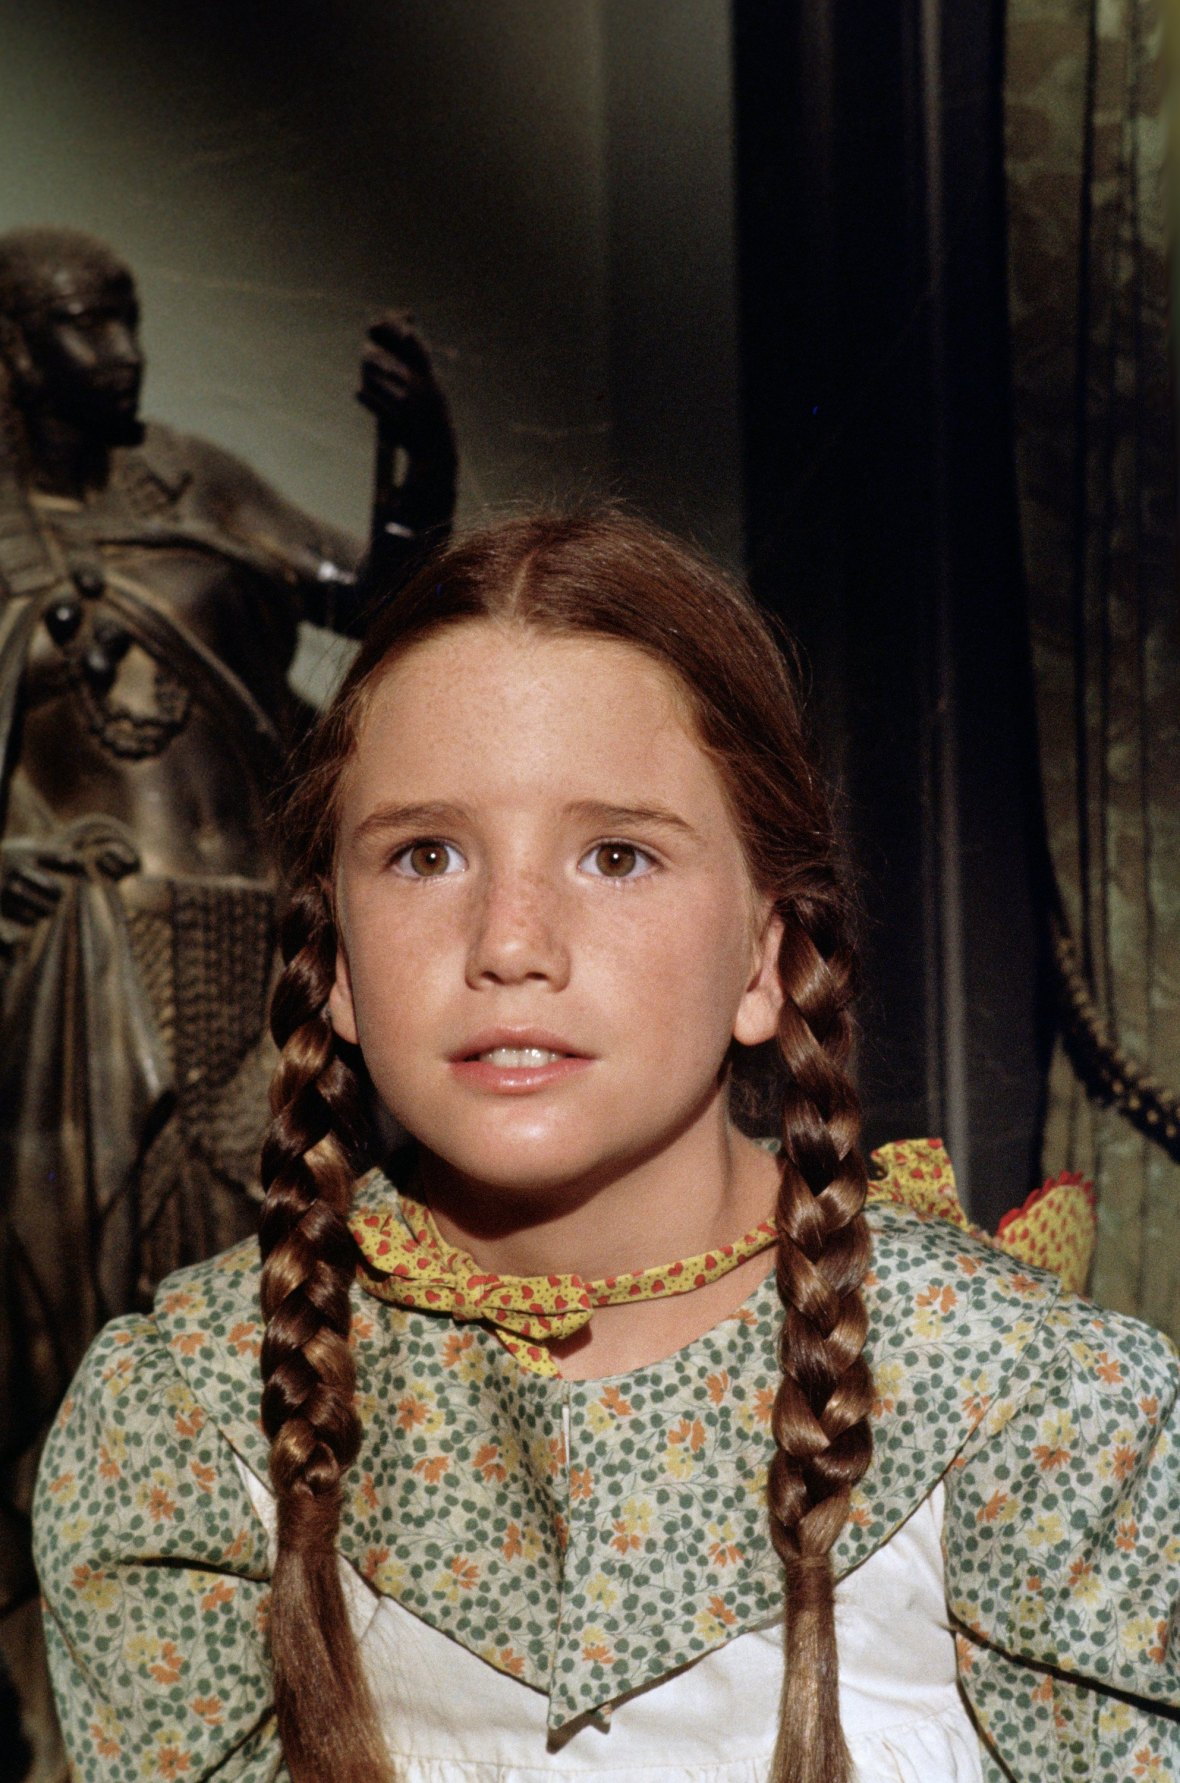 melissa gilbert 'little house on the prairie' getty images